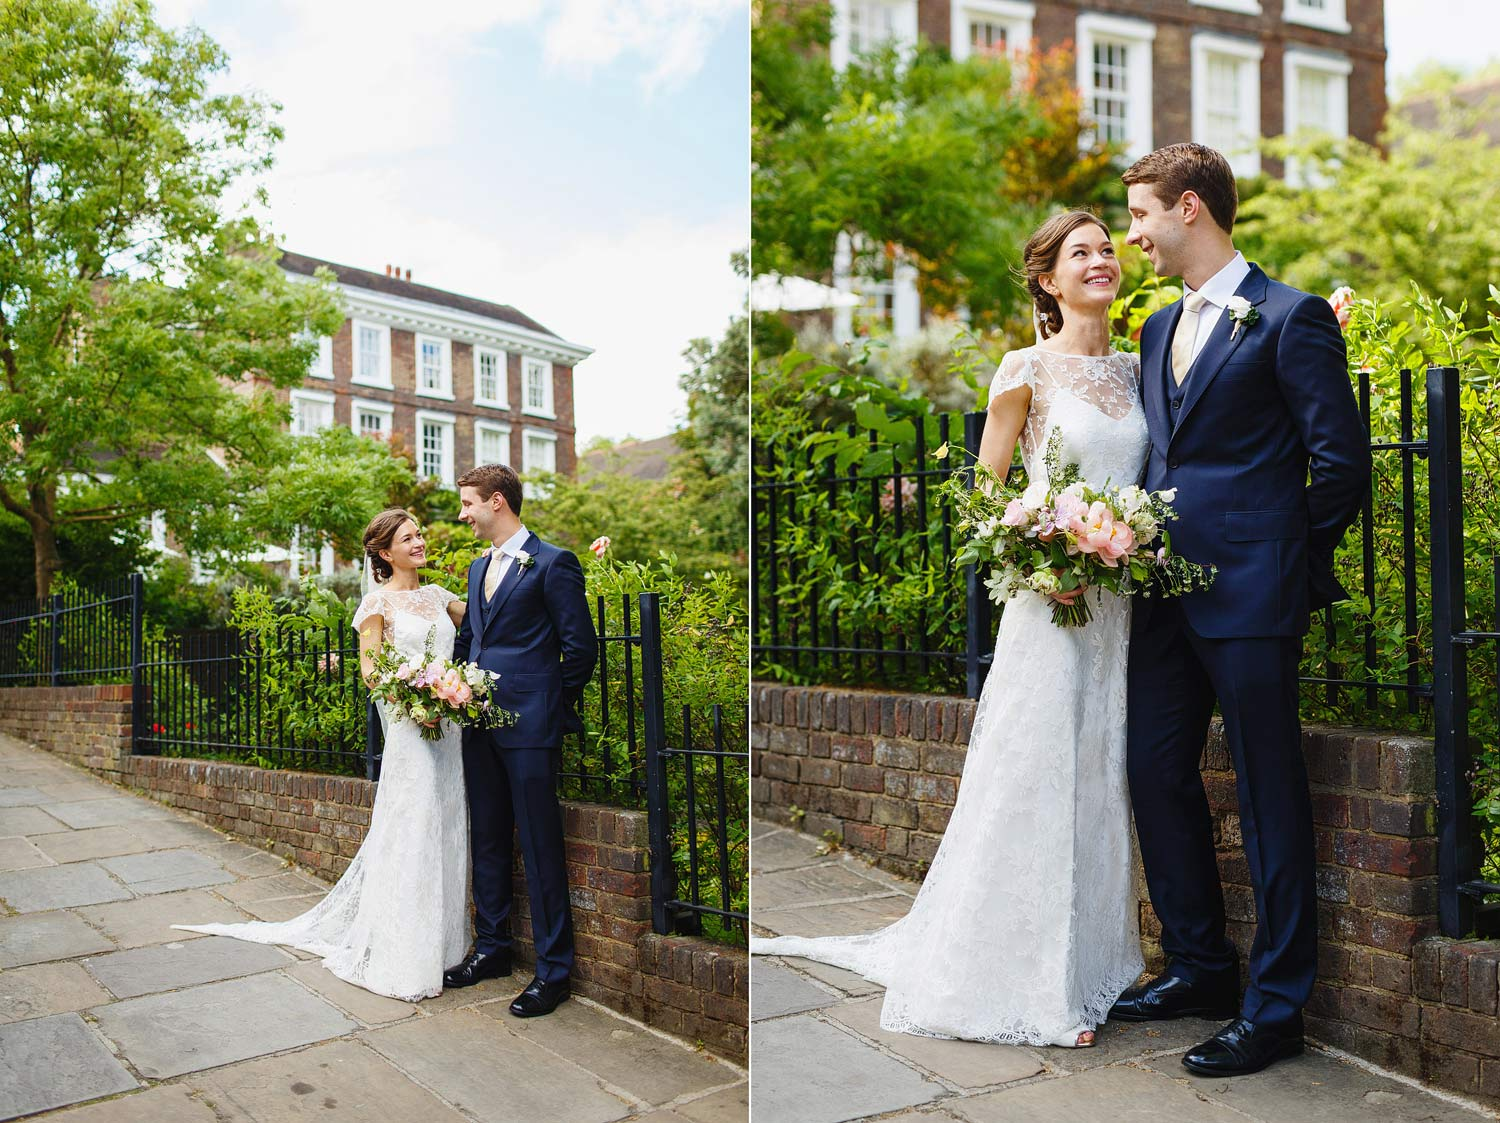 Bride and groom portrait at Burgh House Museum - London wedding photographer